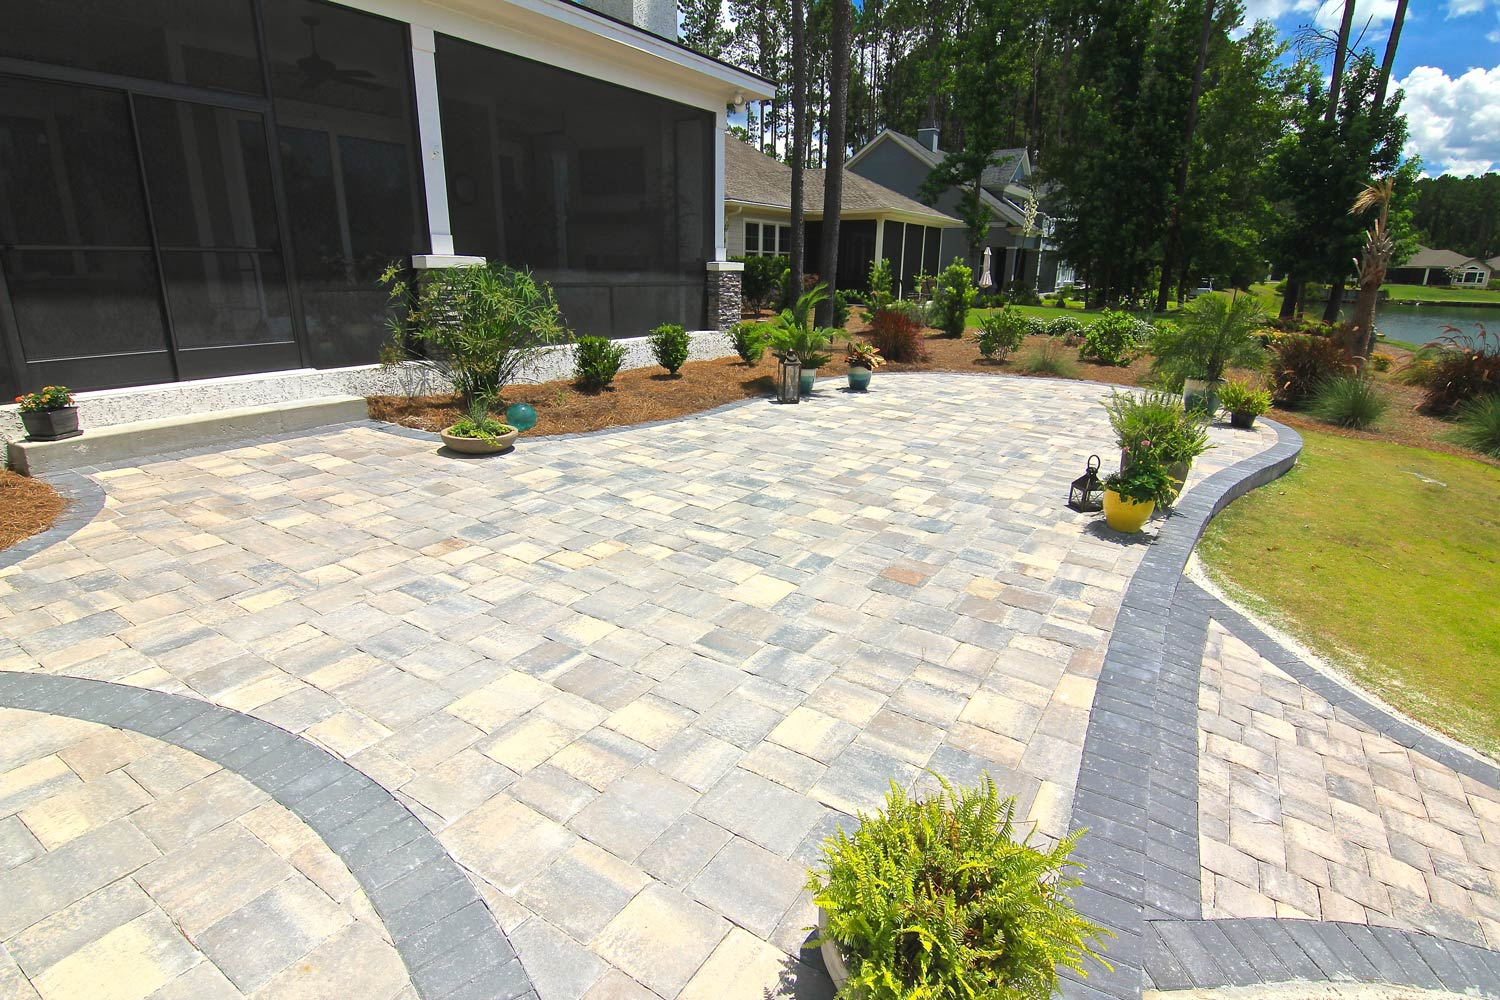 AFTER: The new patio area offers plenty of space to entertain and eliminates the sloped portion of the yard.